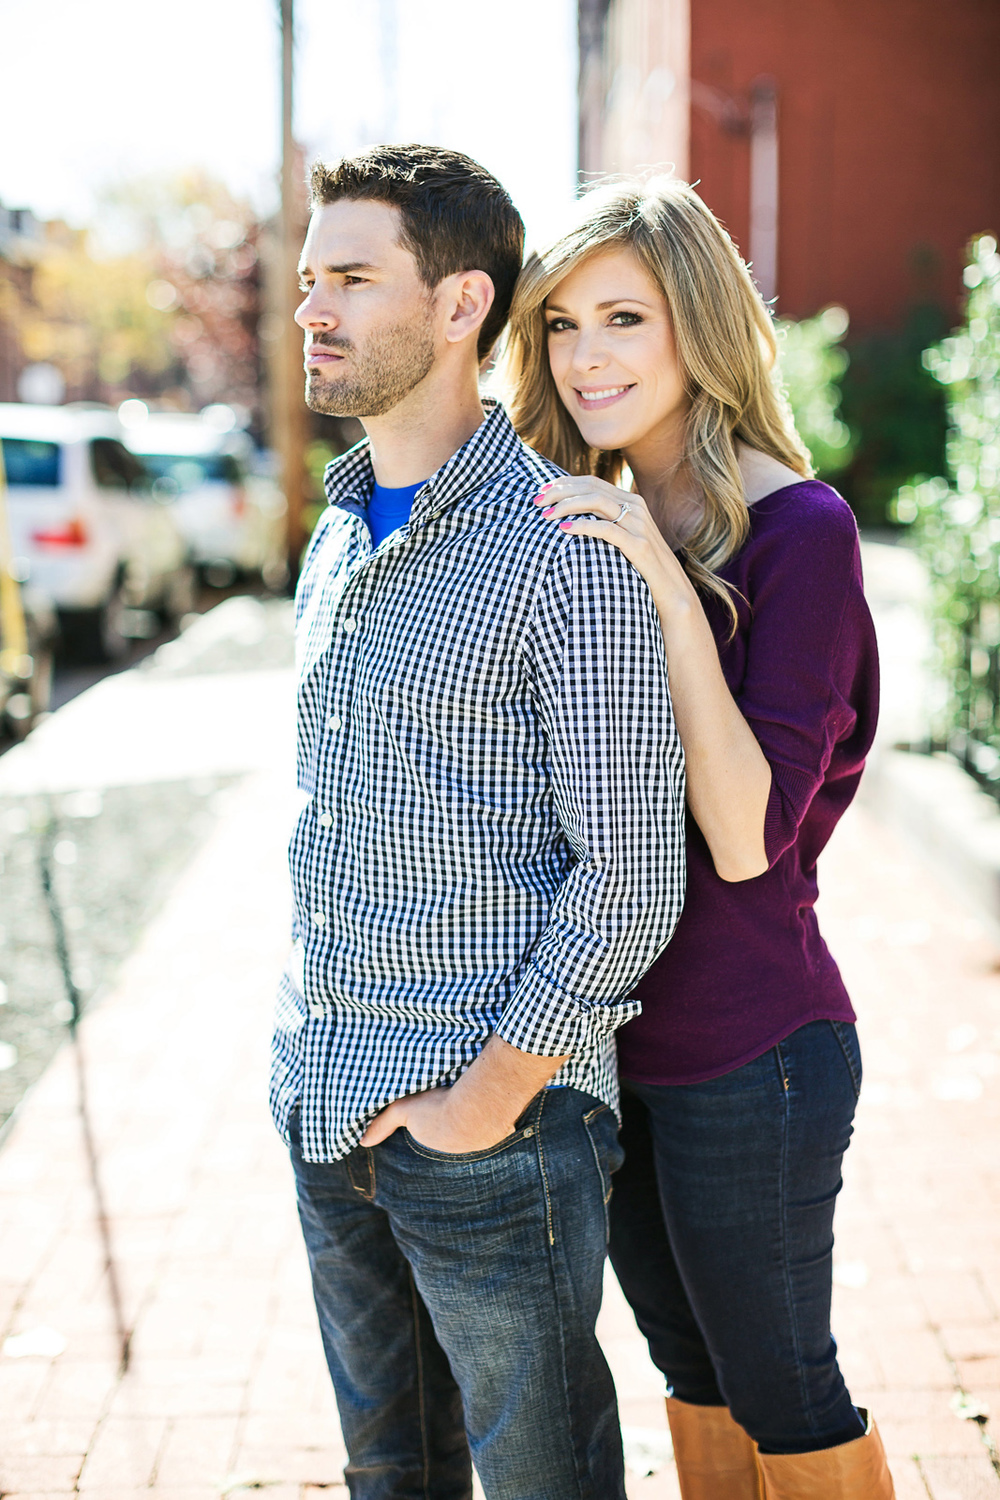 Oldani Photography St Louis Soulard Smile Engagement_20141101_124100.jpg